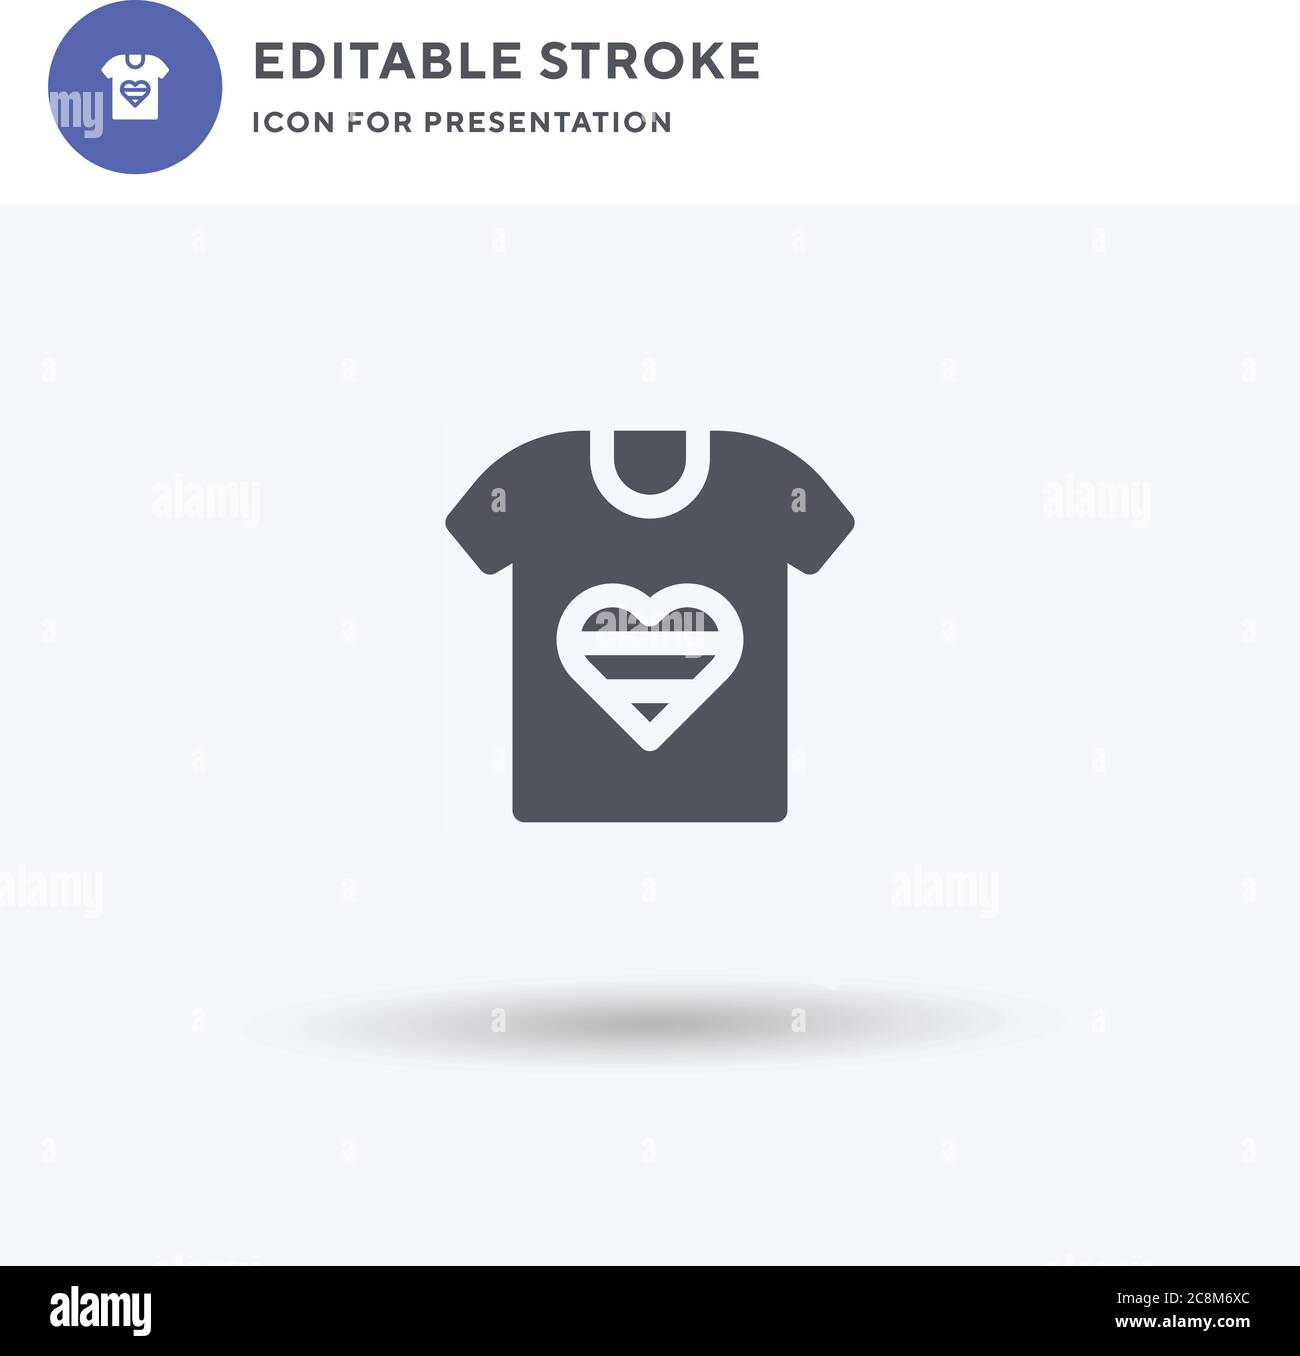 tshirt icon vector filled flat sign solid pictogram isolated on white logo illustration tshirt icon for presentation stock vector image art alamy alamy